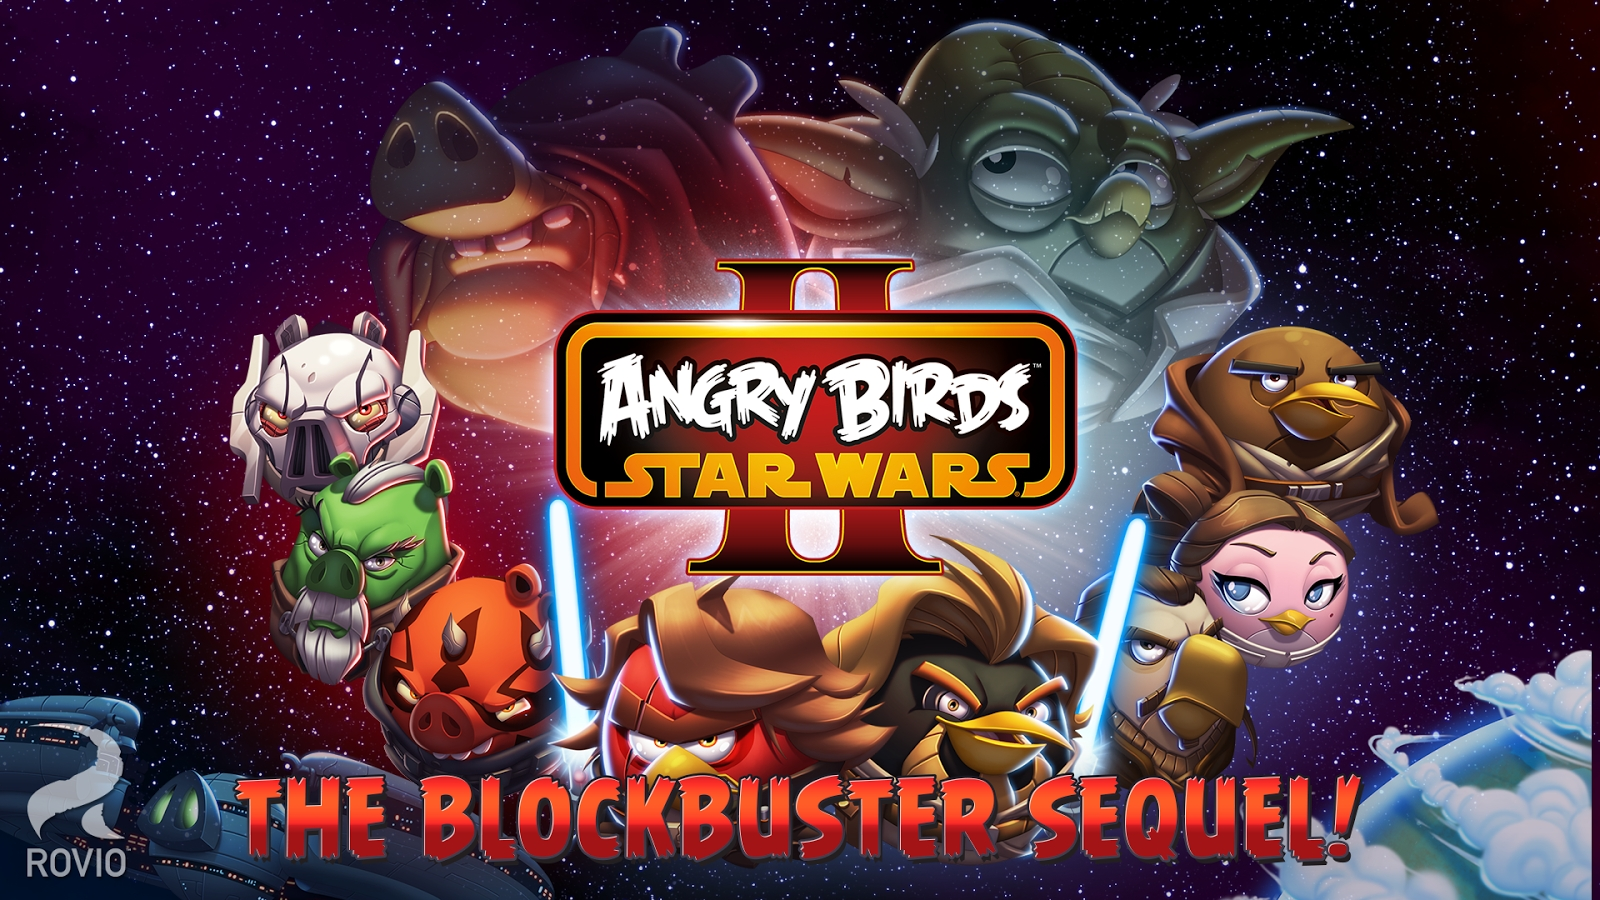 Angry Birds for Android - APK Download - APKPure.com